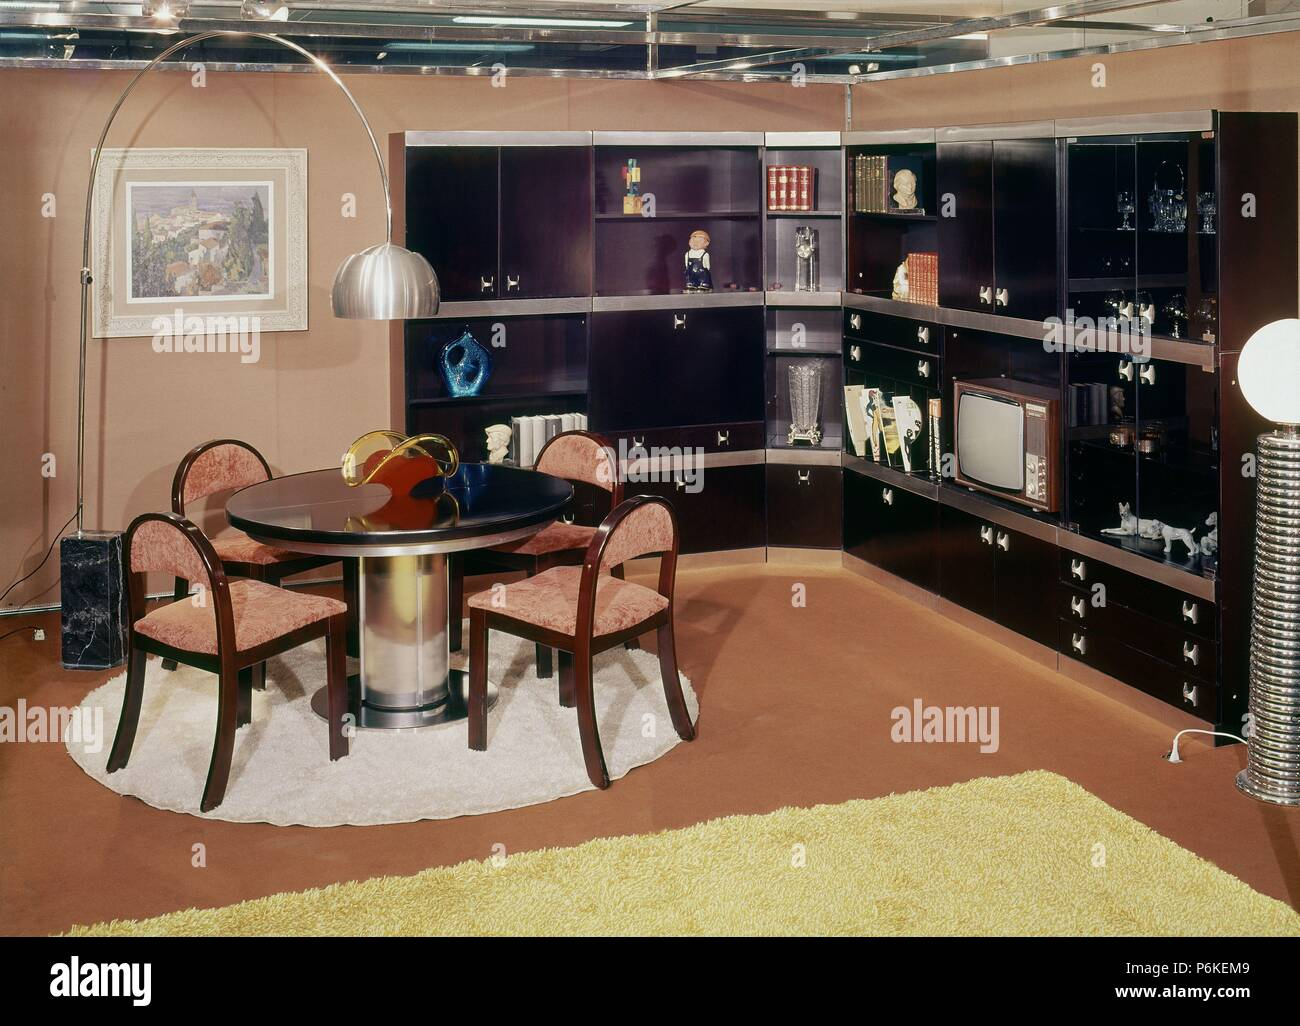 Decoracion De Un Salon Comedor Decoracion Salon Comedor AÑos 70 Stock Photo 210640985 Alamy